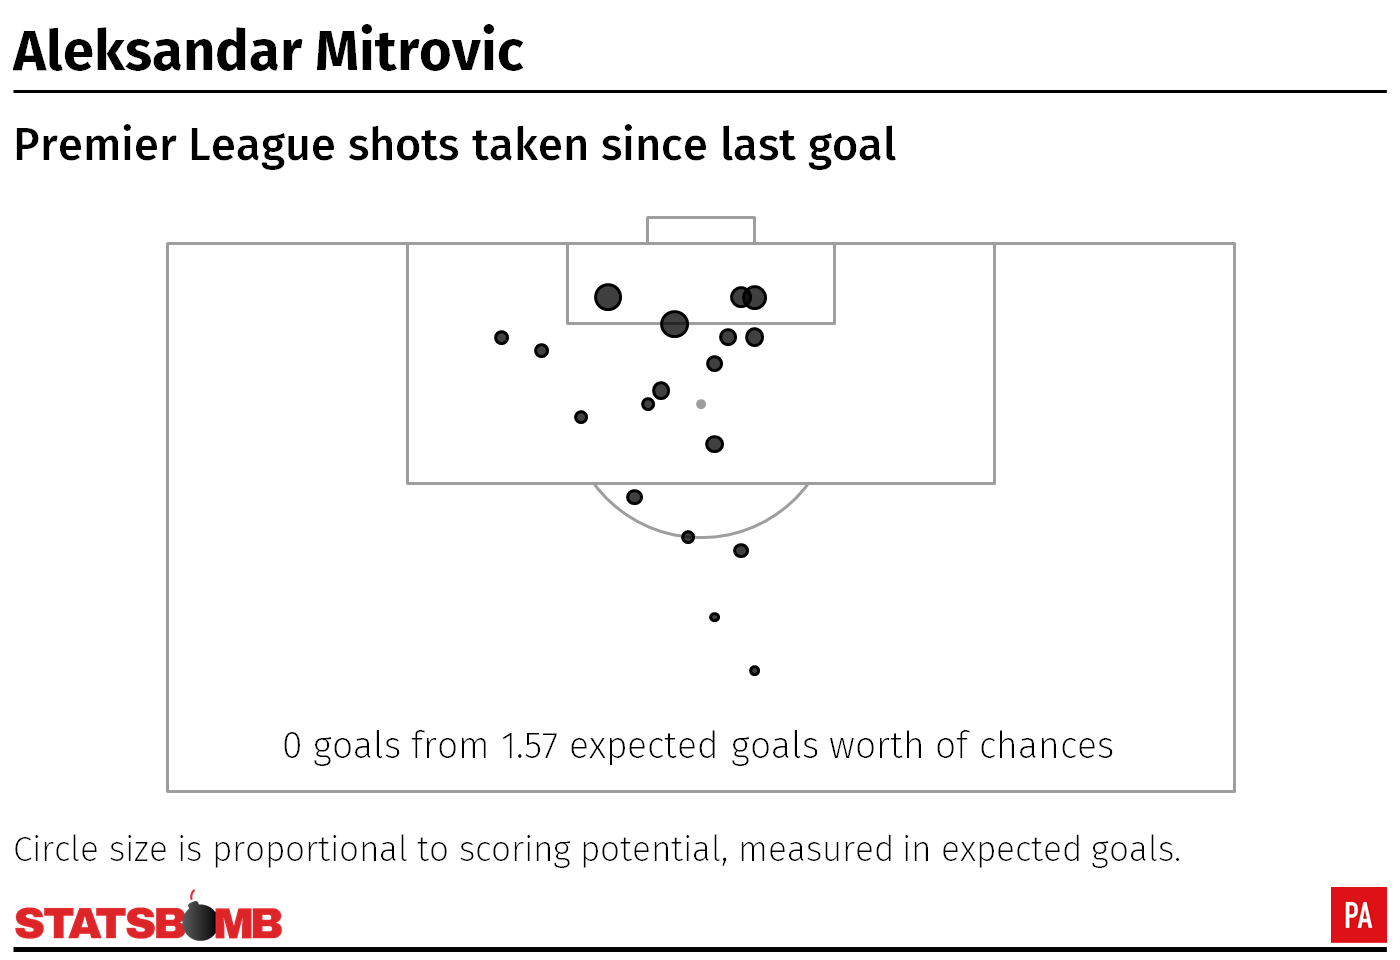 Aleksandar Mitrovic shot map